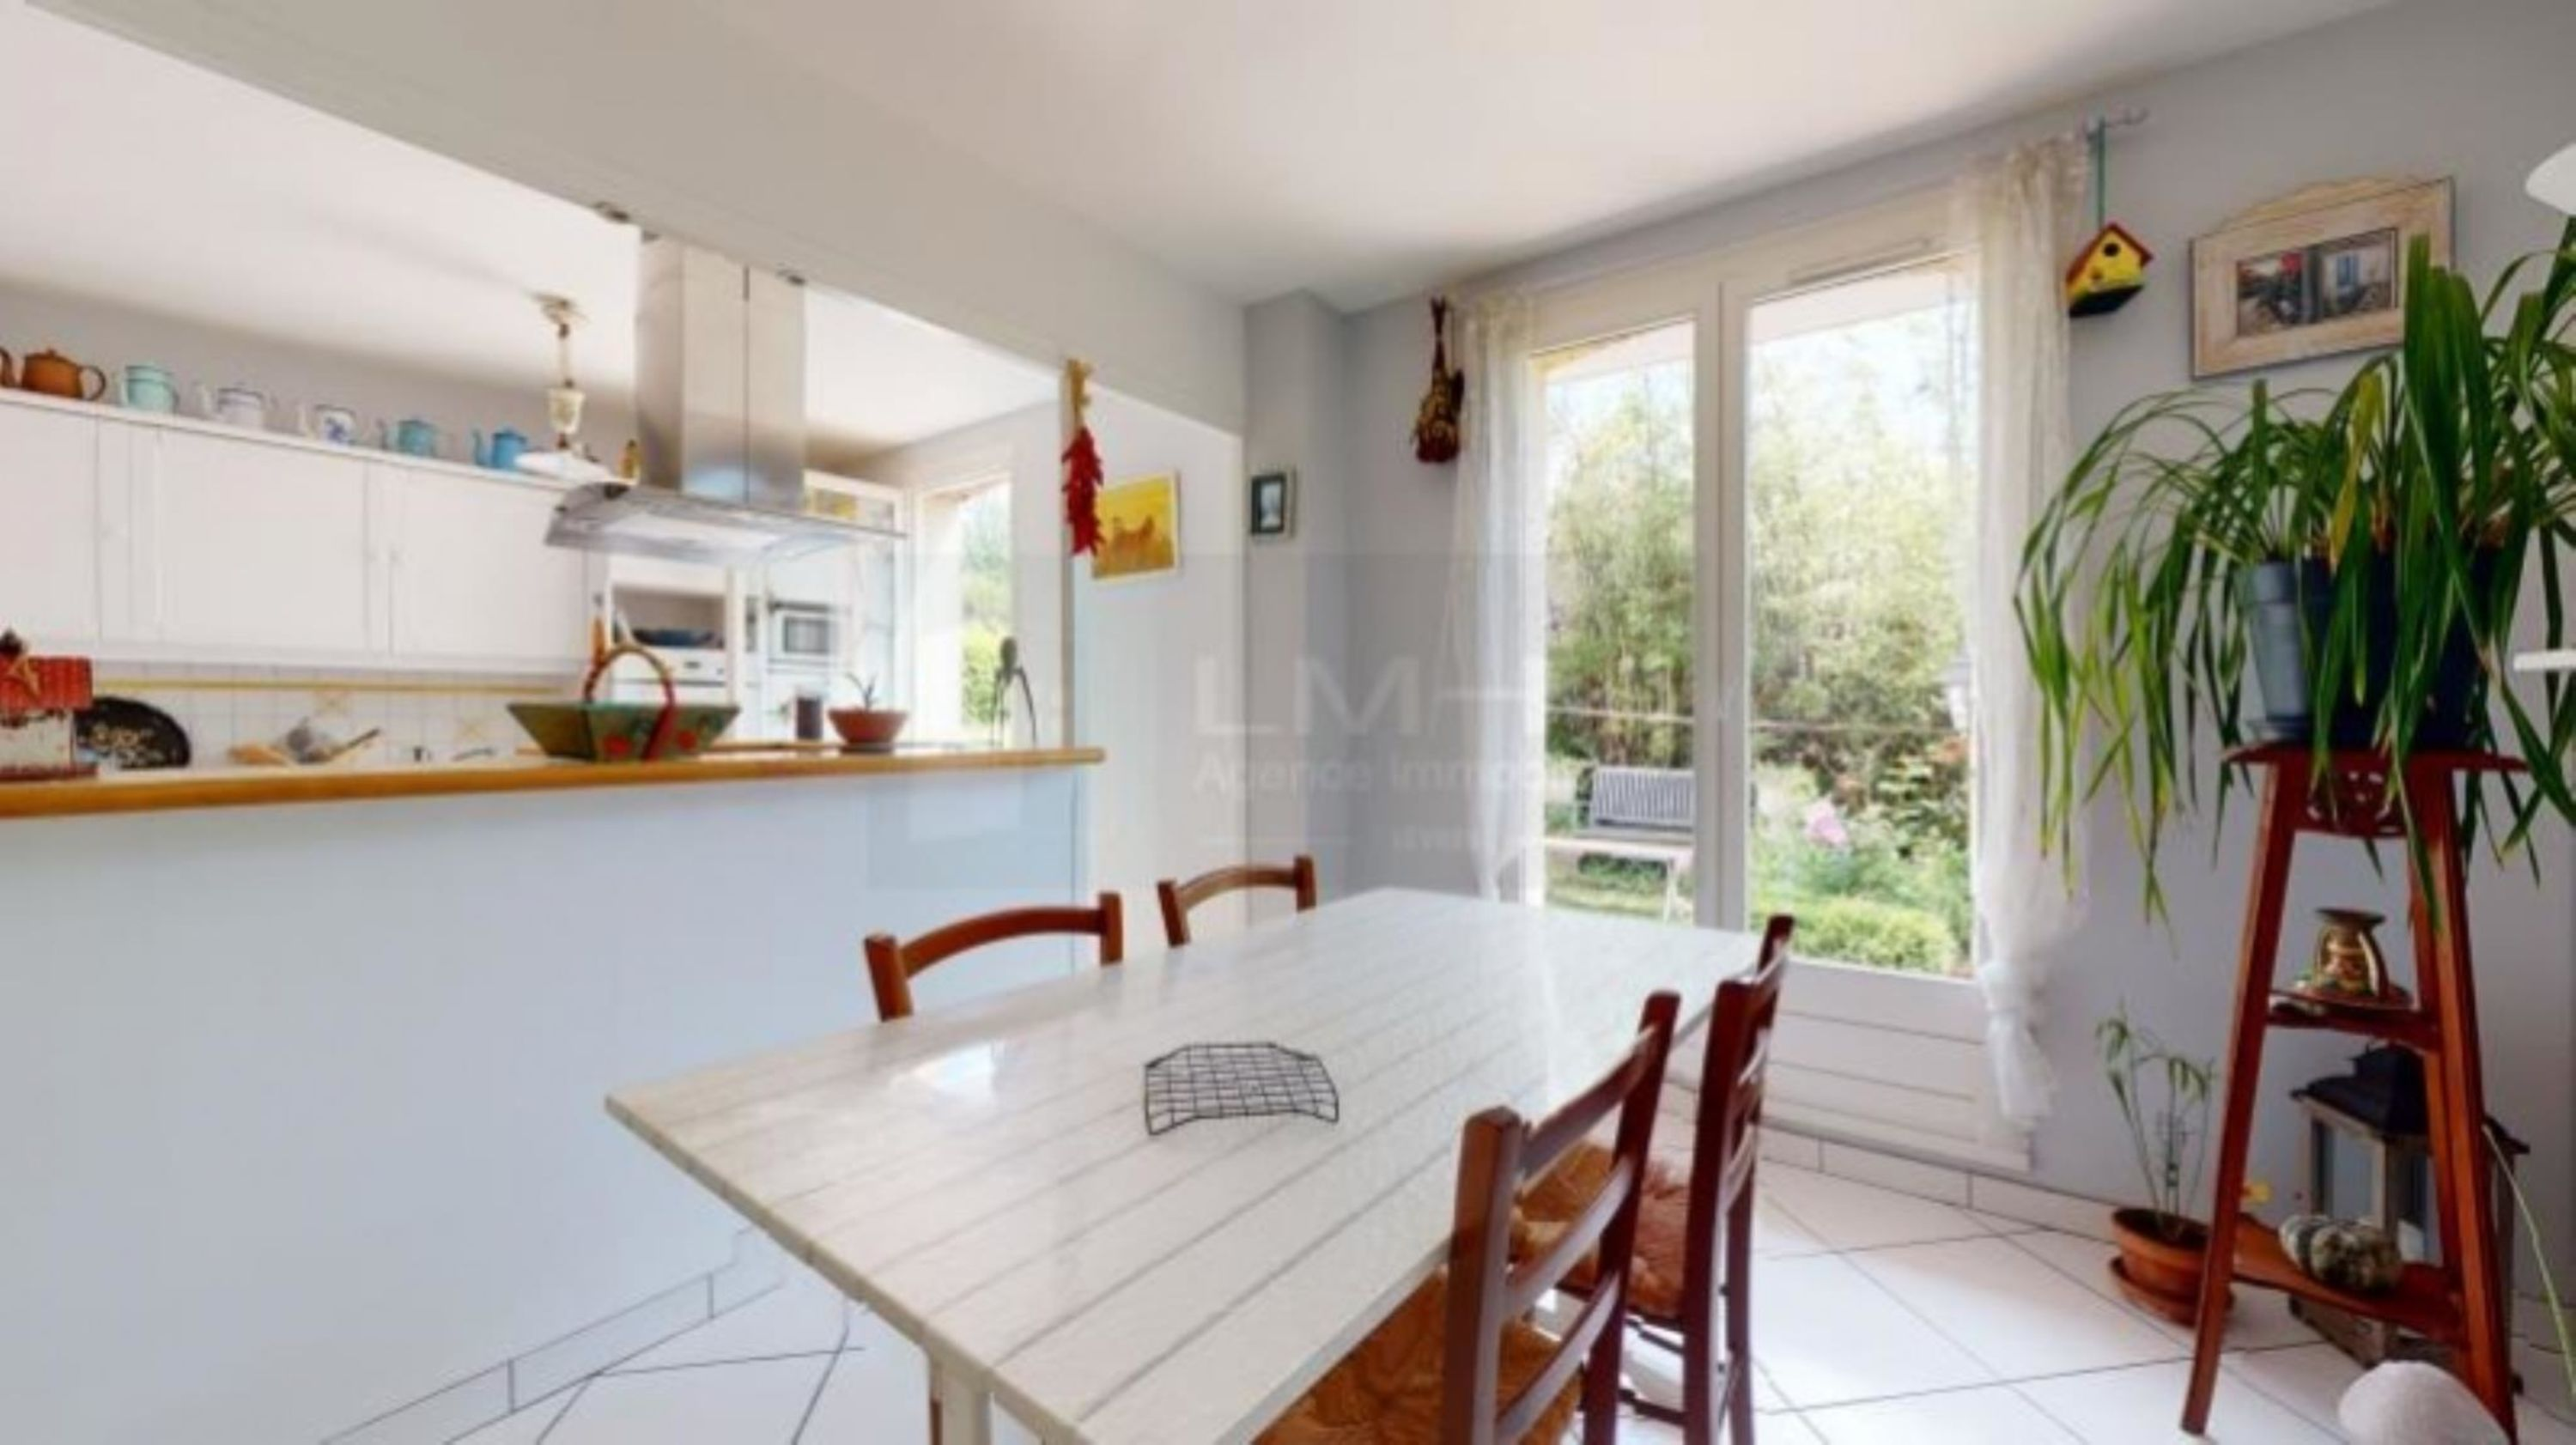 agence immobilière sevres 92 le chesnay 78 achat vente location appartement maison immobilier LMHT ANF MZIXHHPS